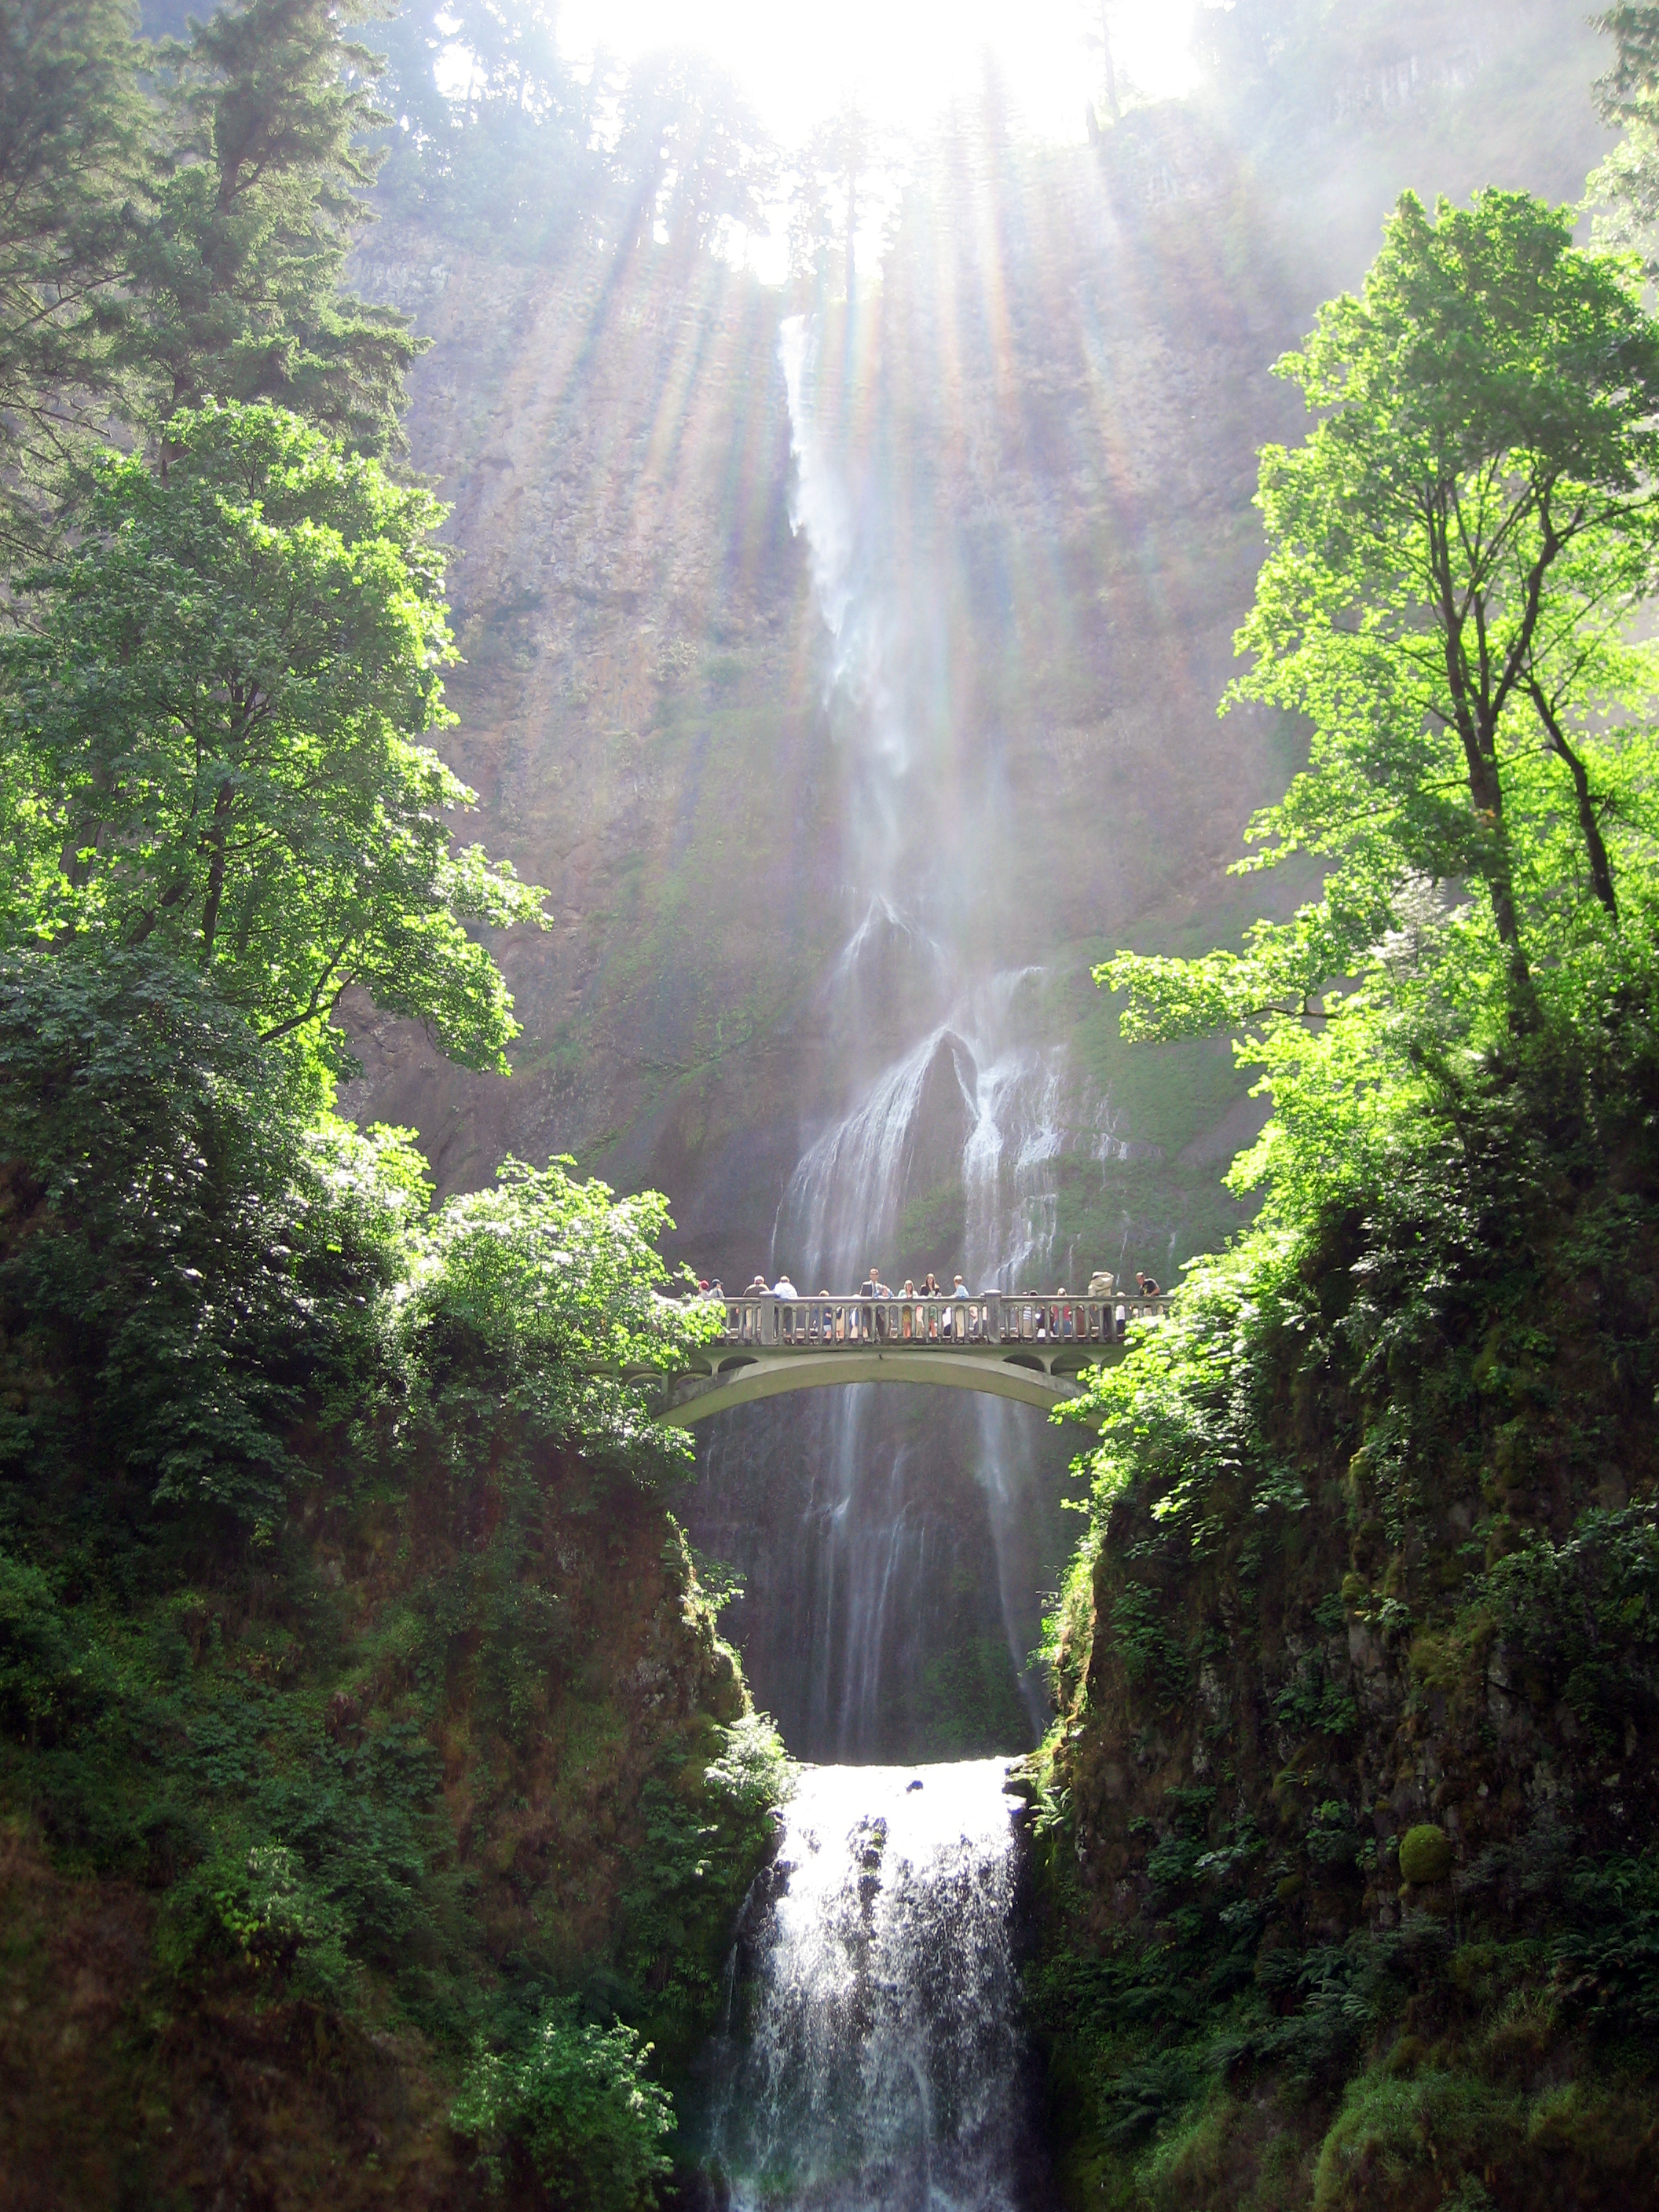 oregon map united states with File Multnomah Falls  Oregon on Explore The Gorge in addition File South Falls  Silver Falls State Park also File Multnomah falls  oregon further Mount Jefferson furthermore Ocean City State Park.